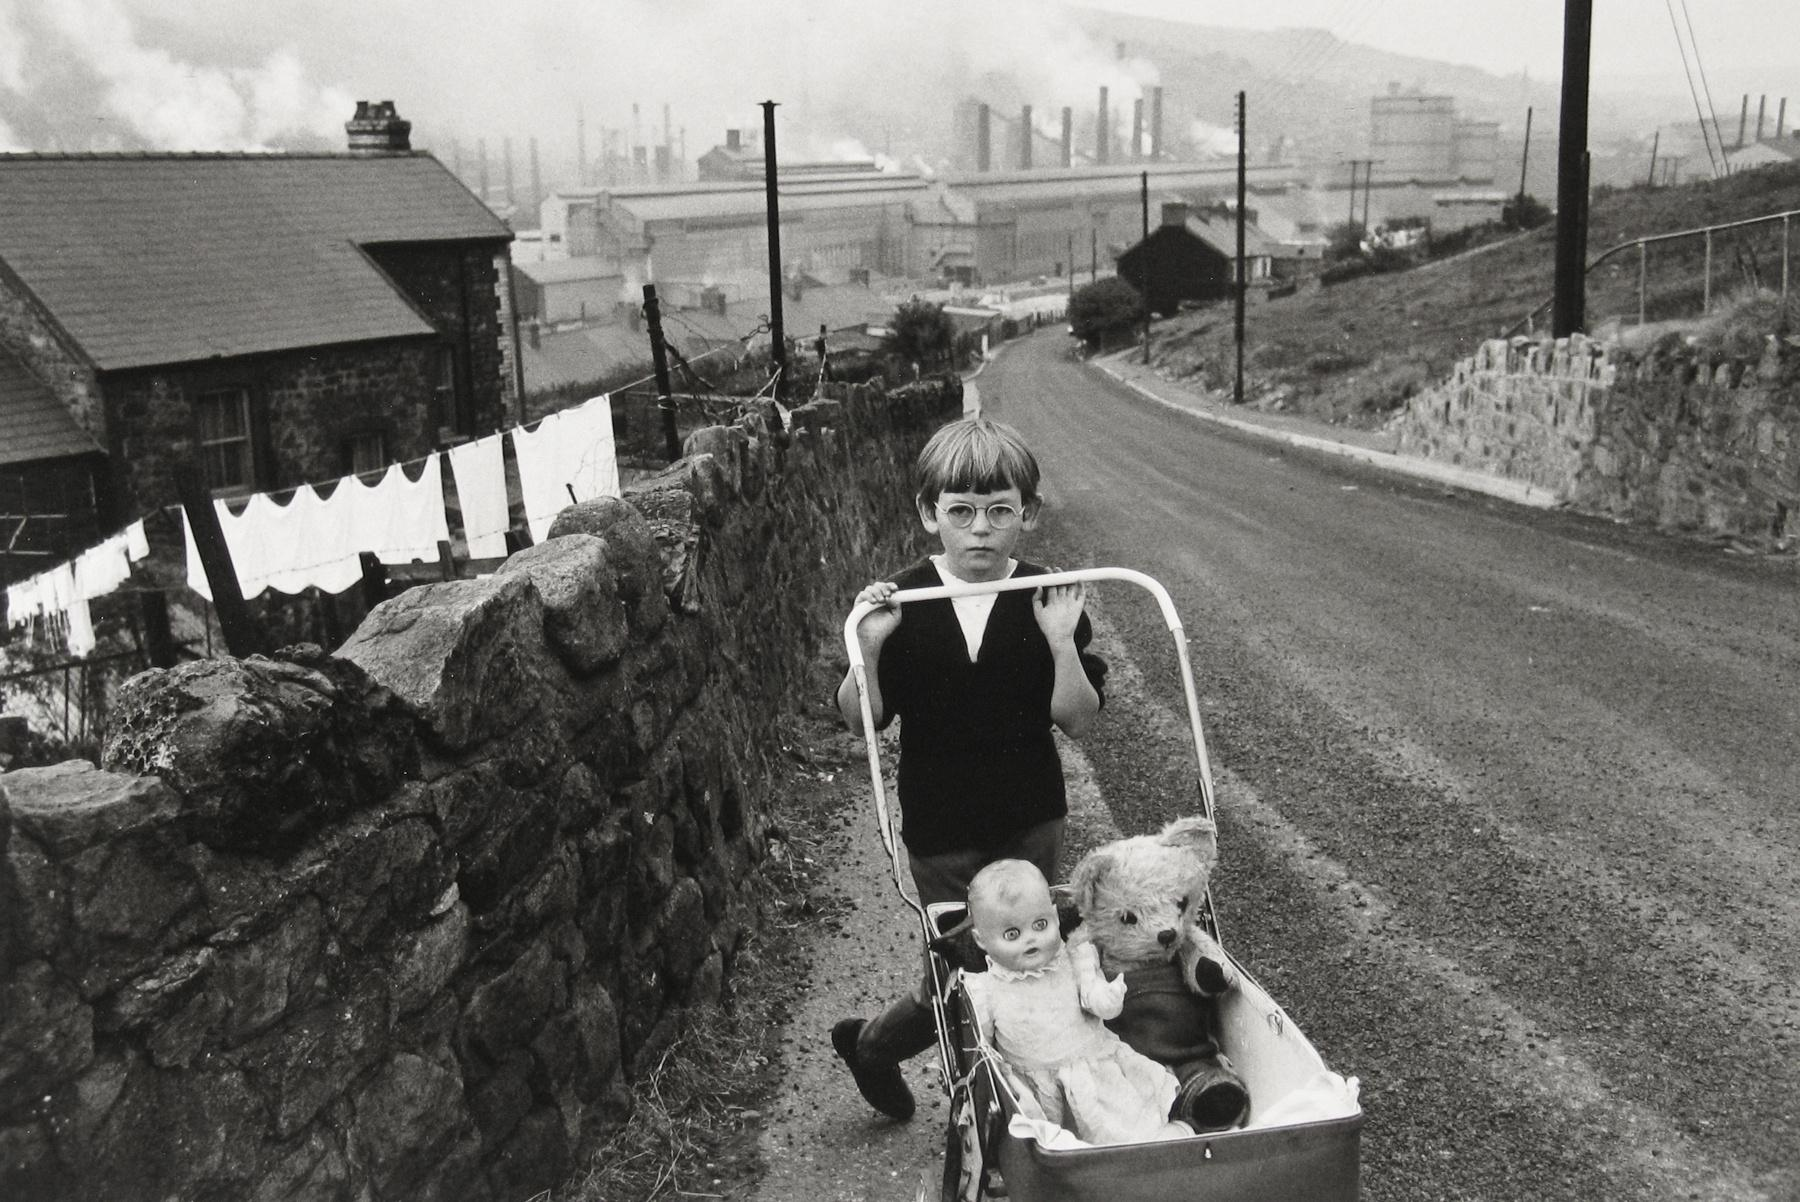 The big picture: fresh-faced innocence in the Ebbw Valley